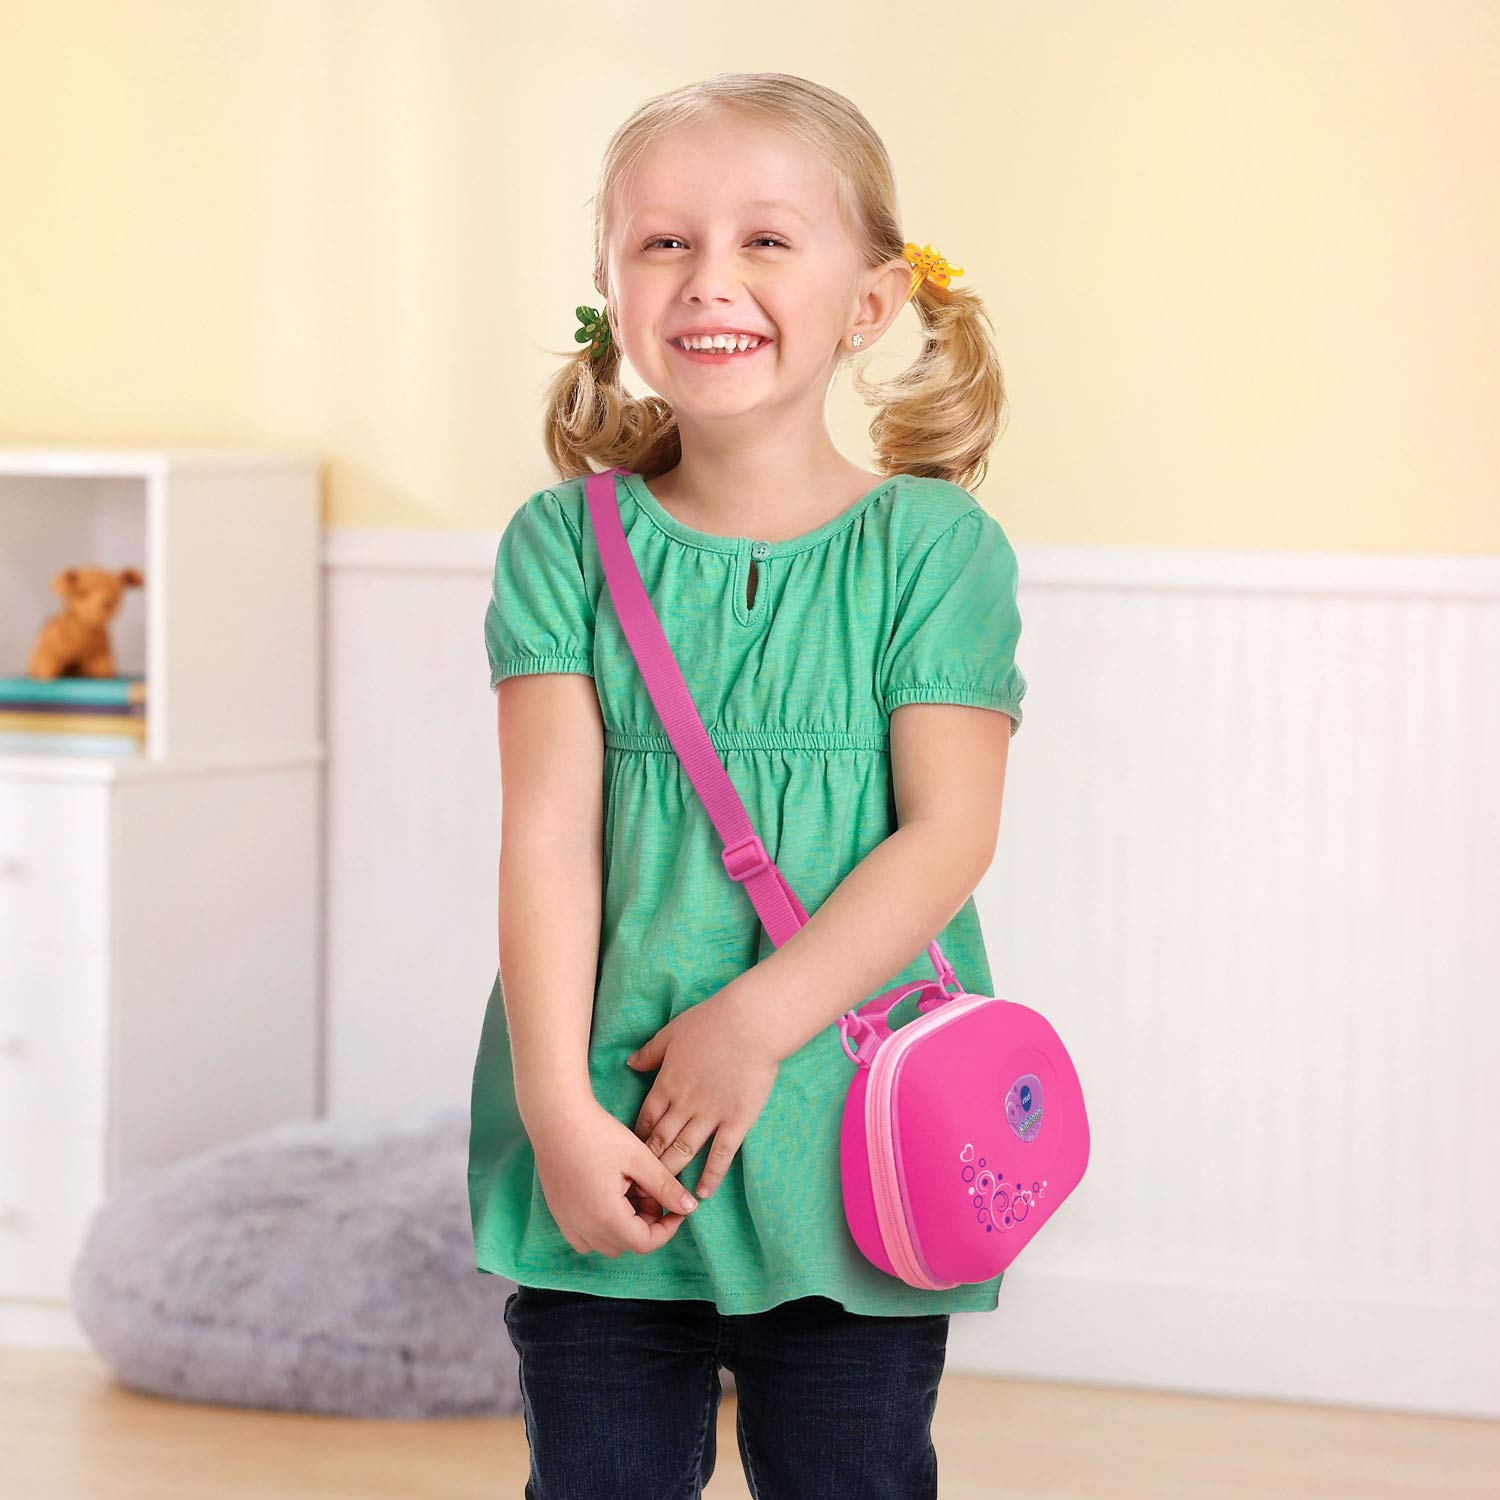 VTech Kidizoom Carrying Case, Pink by VTech (Image #5)